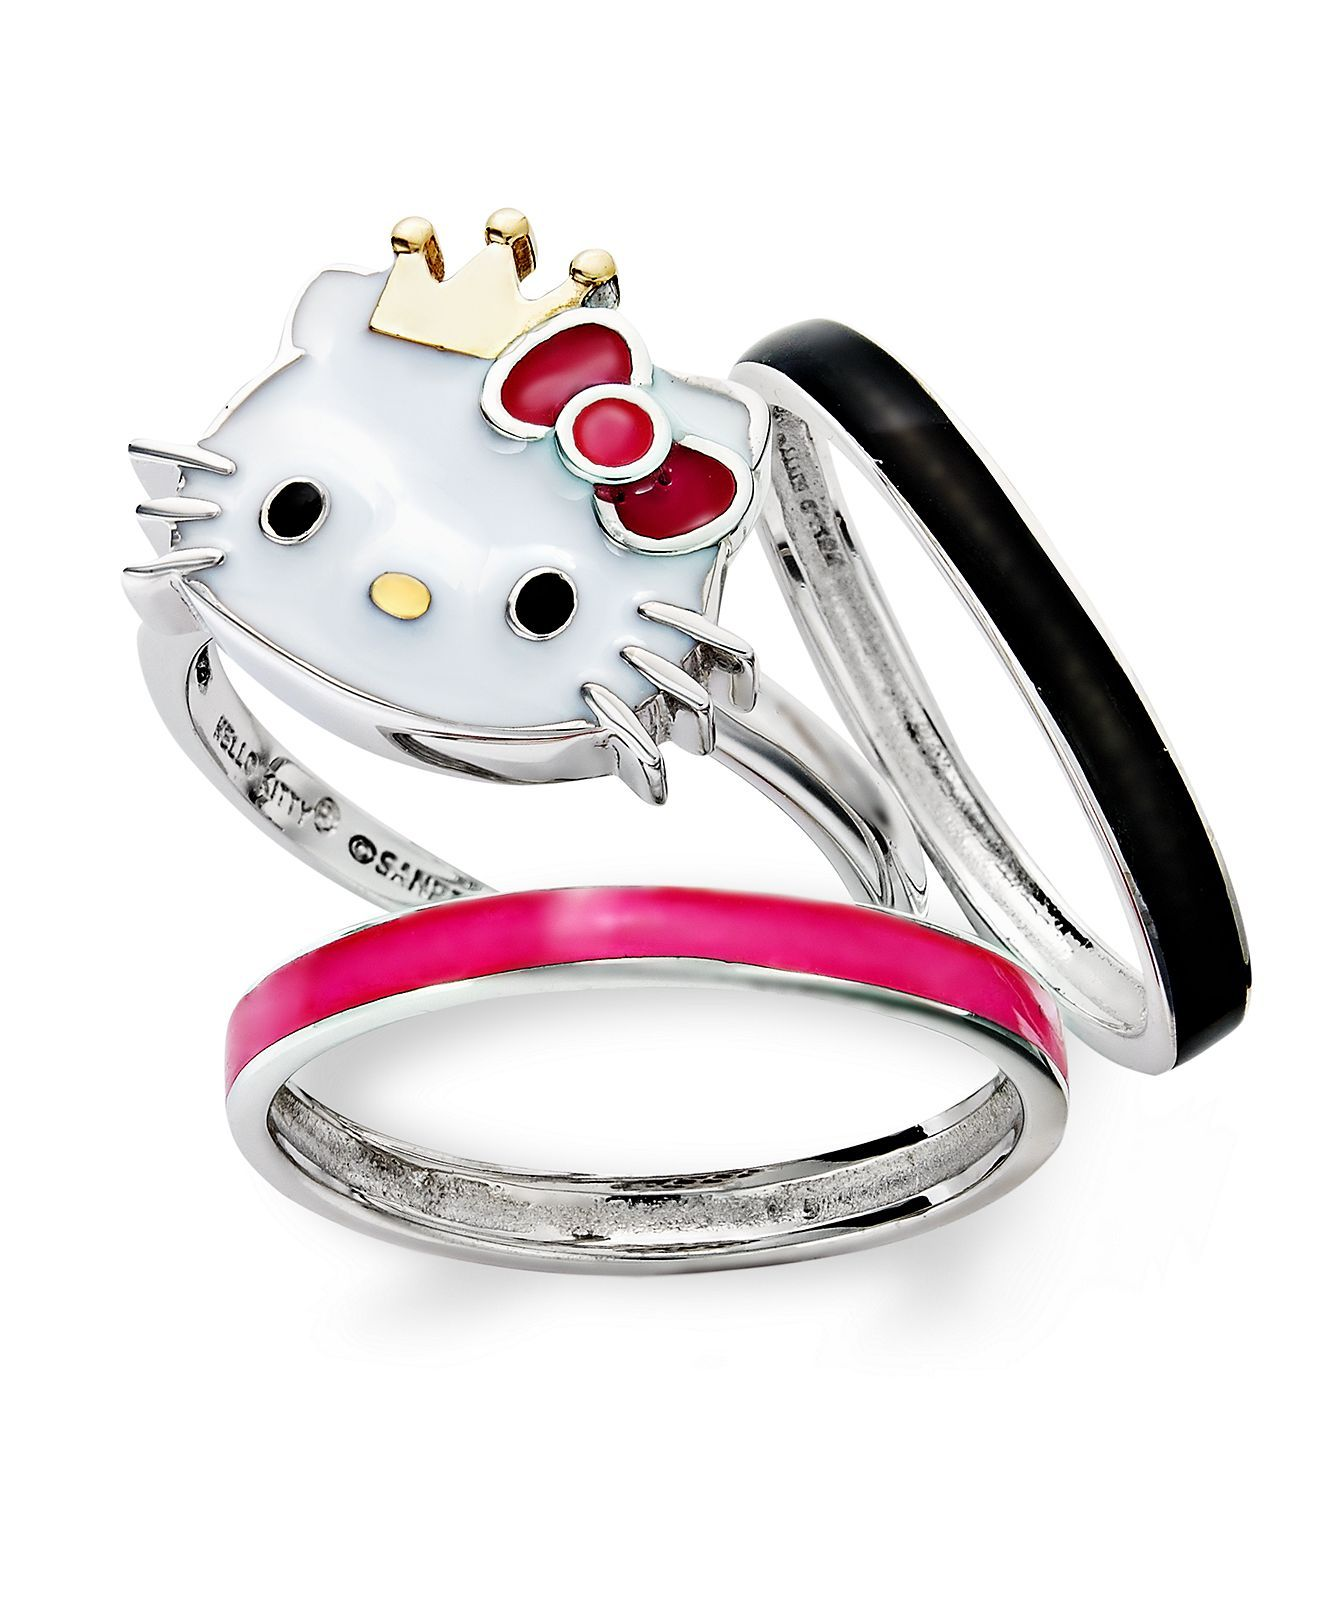 hello kitty sterling silver and gold over sterling silver ring set crystal princess kitty rings rings jewelry watches macys - Hello Kitty Wedding Ring